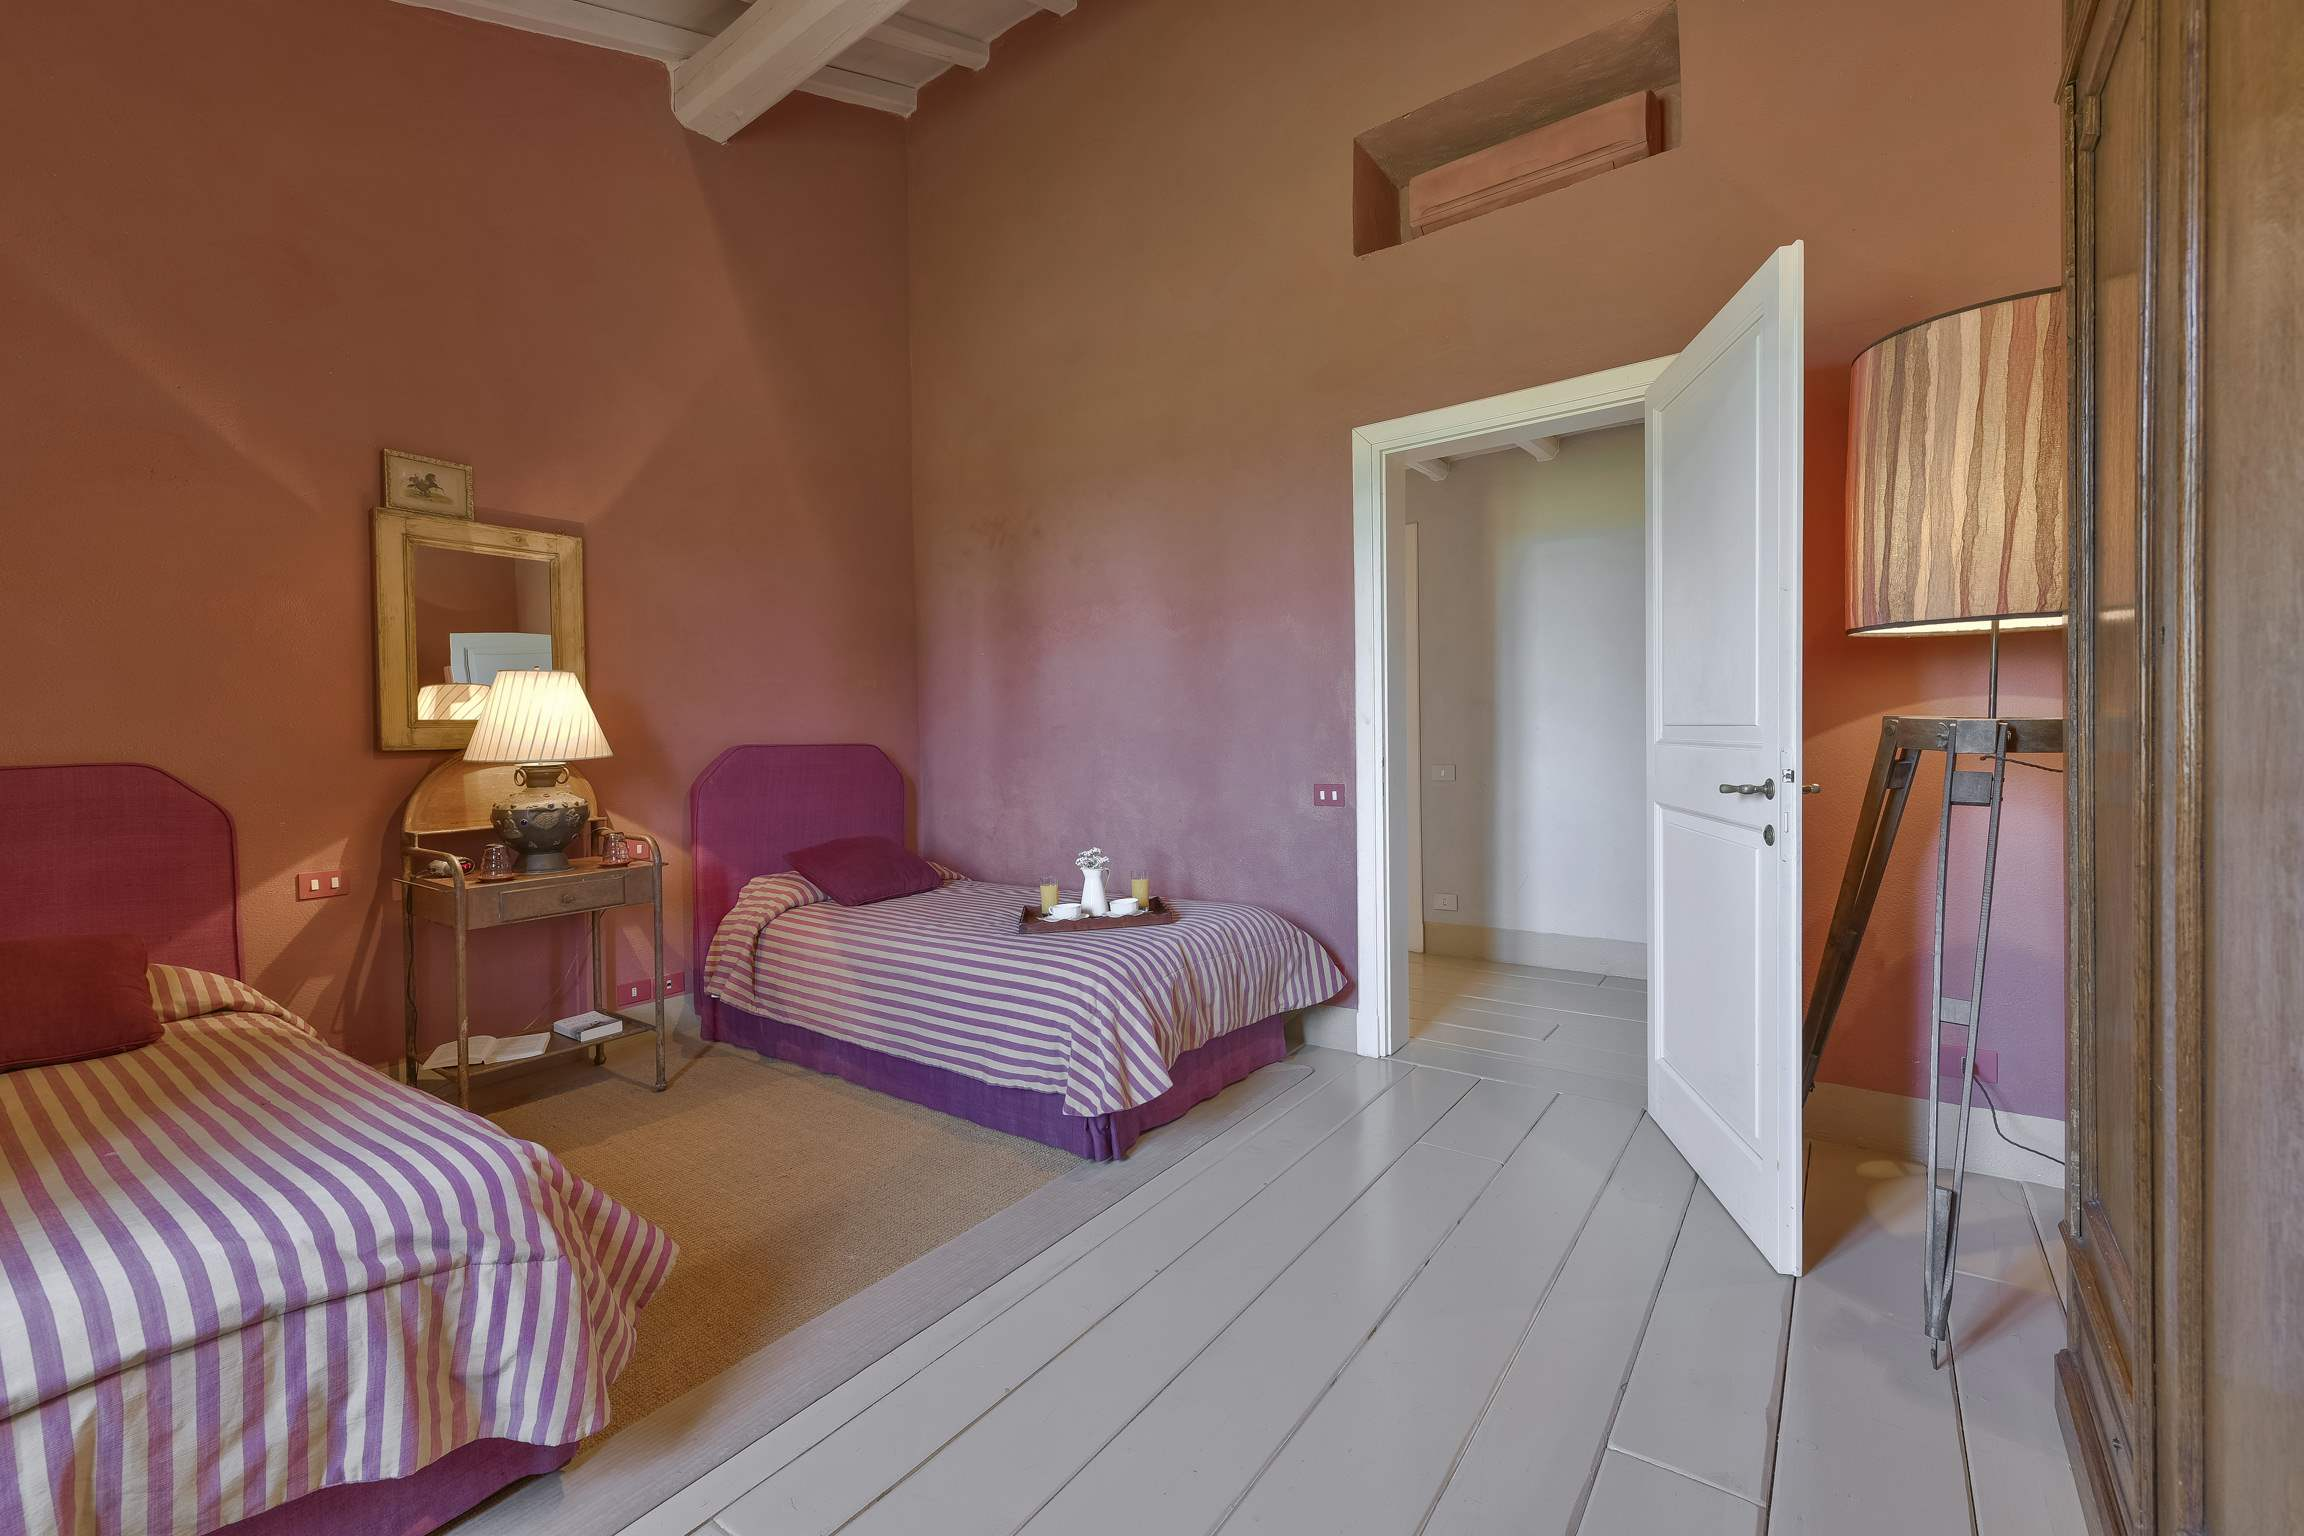 Villa Maremma 1, 7 bedroom villa in South Tuscany - Maremma, Tuscany Photo #32